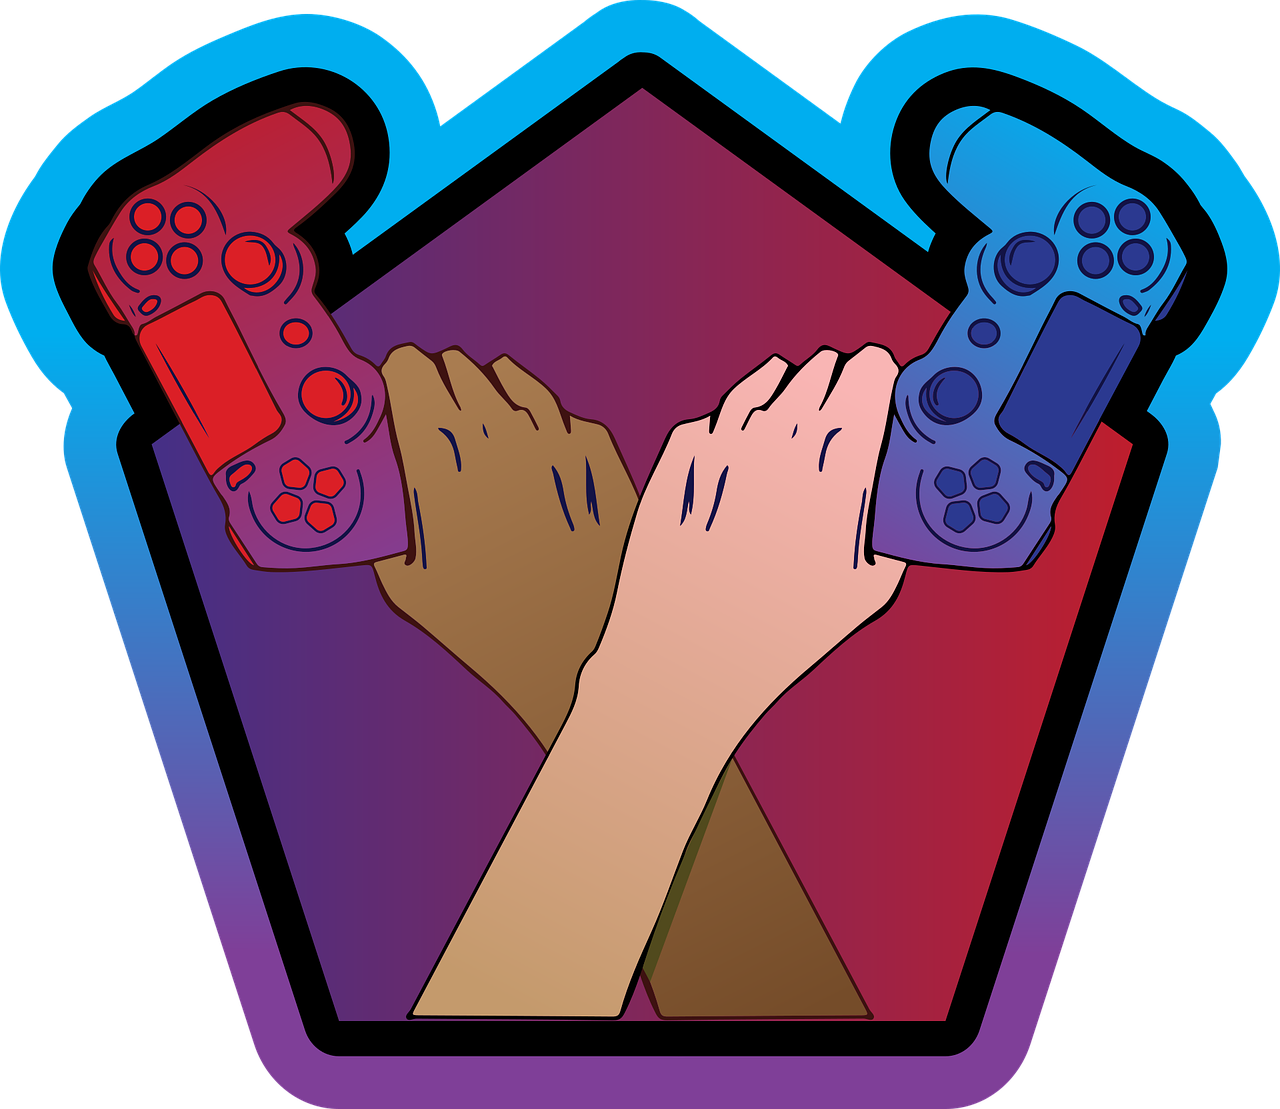 Two Hands with Game Controllers